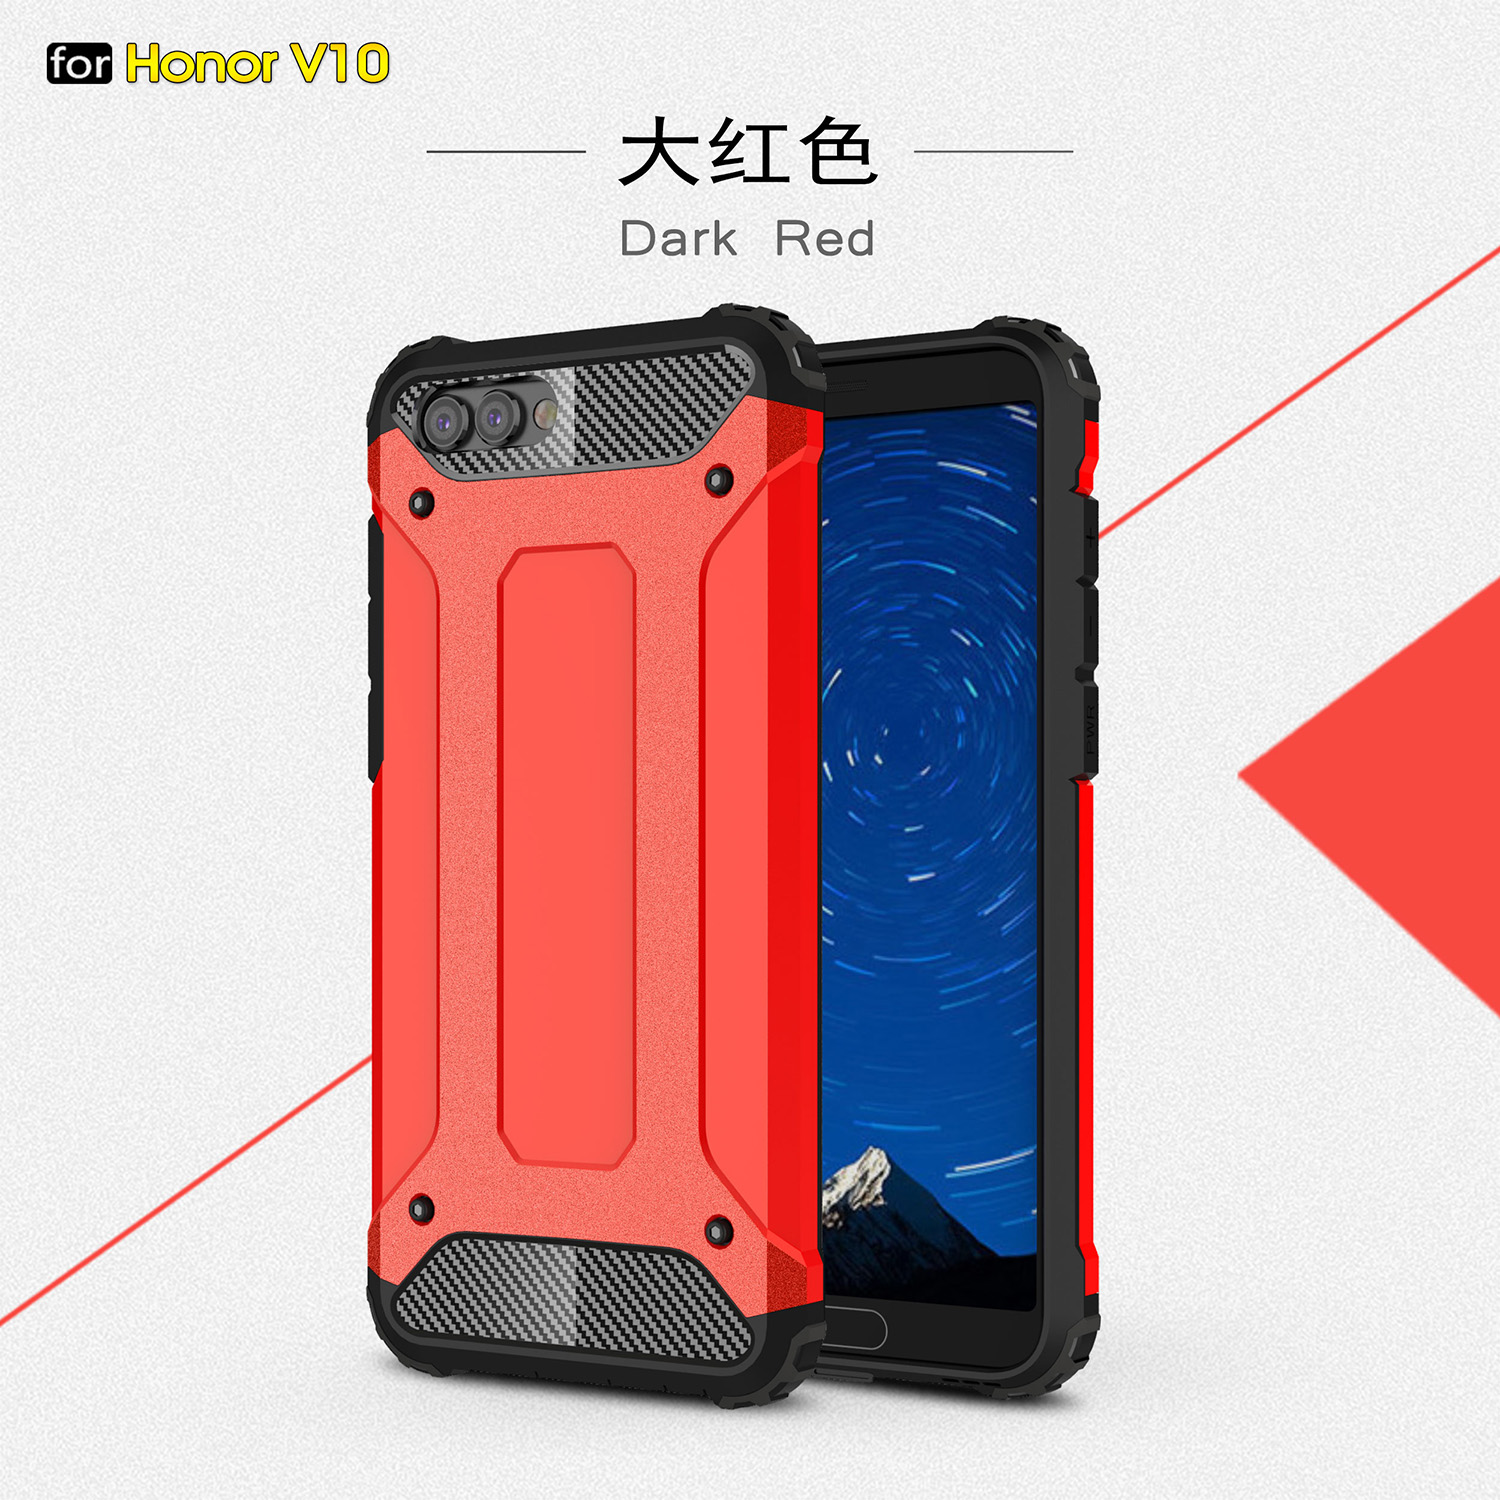 41df6fa17eb here the case really with a good quality,and pls let us know which models  and colors you want,there are any question,pls contact us.or leave note for  us.